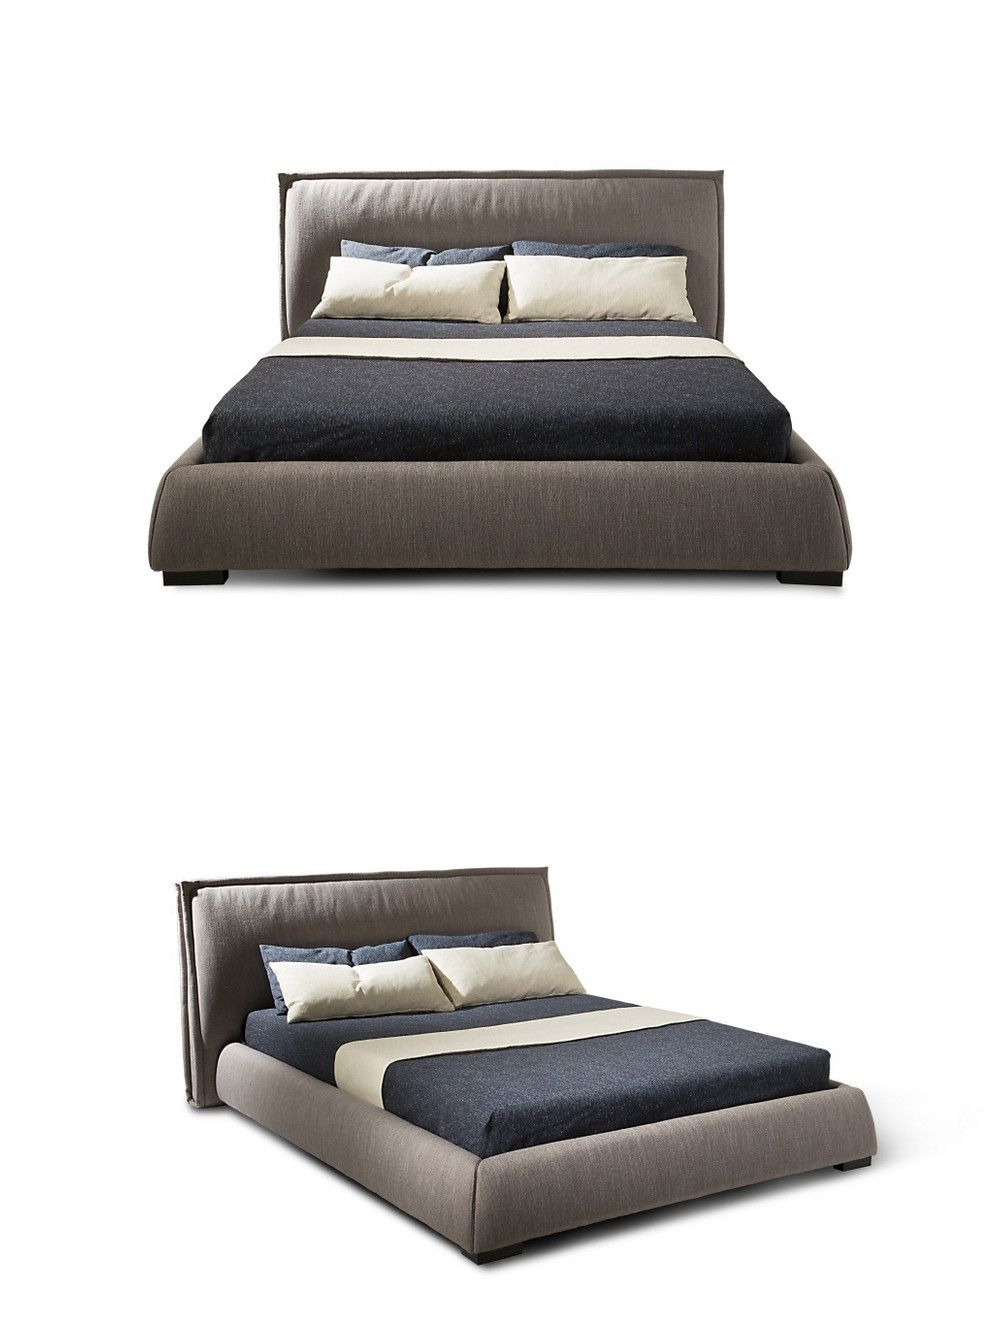 Modern Double Simple Bed Design Furniture Wooden New Design Modern